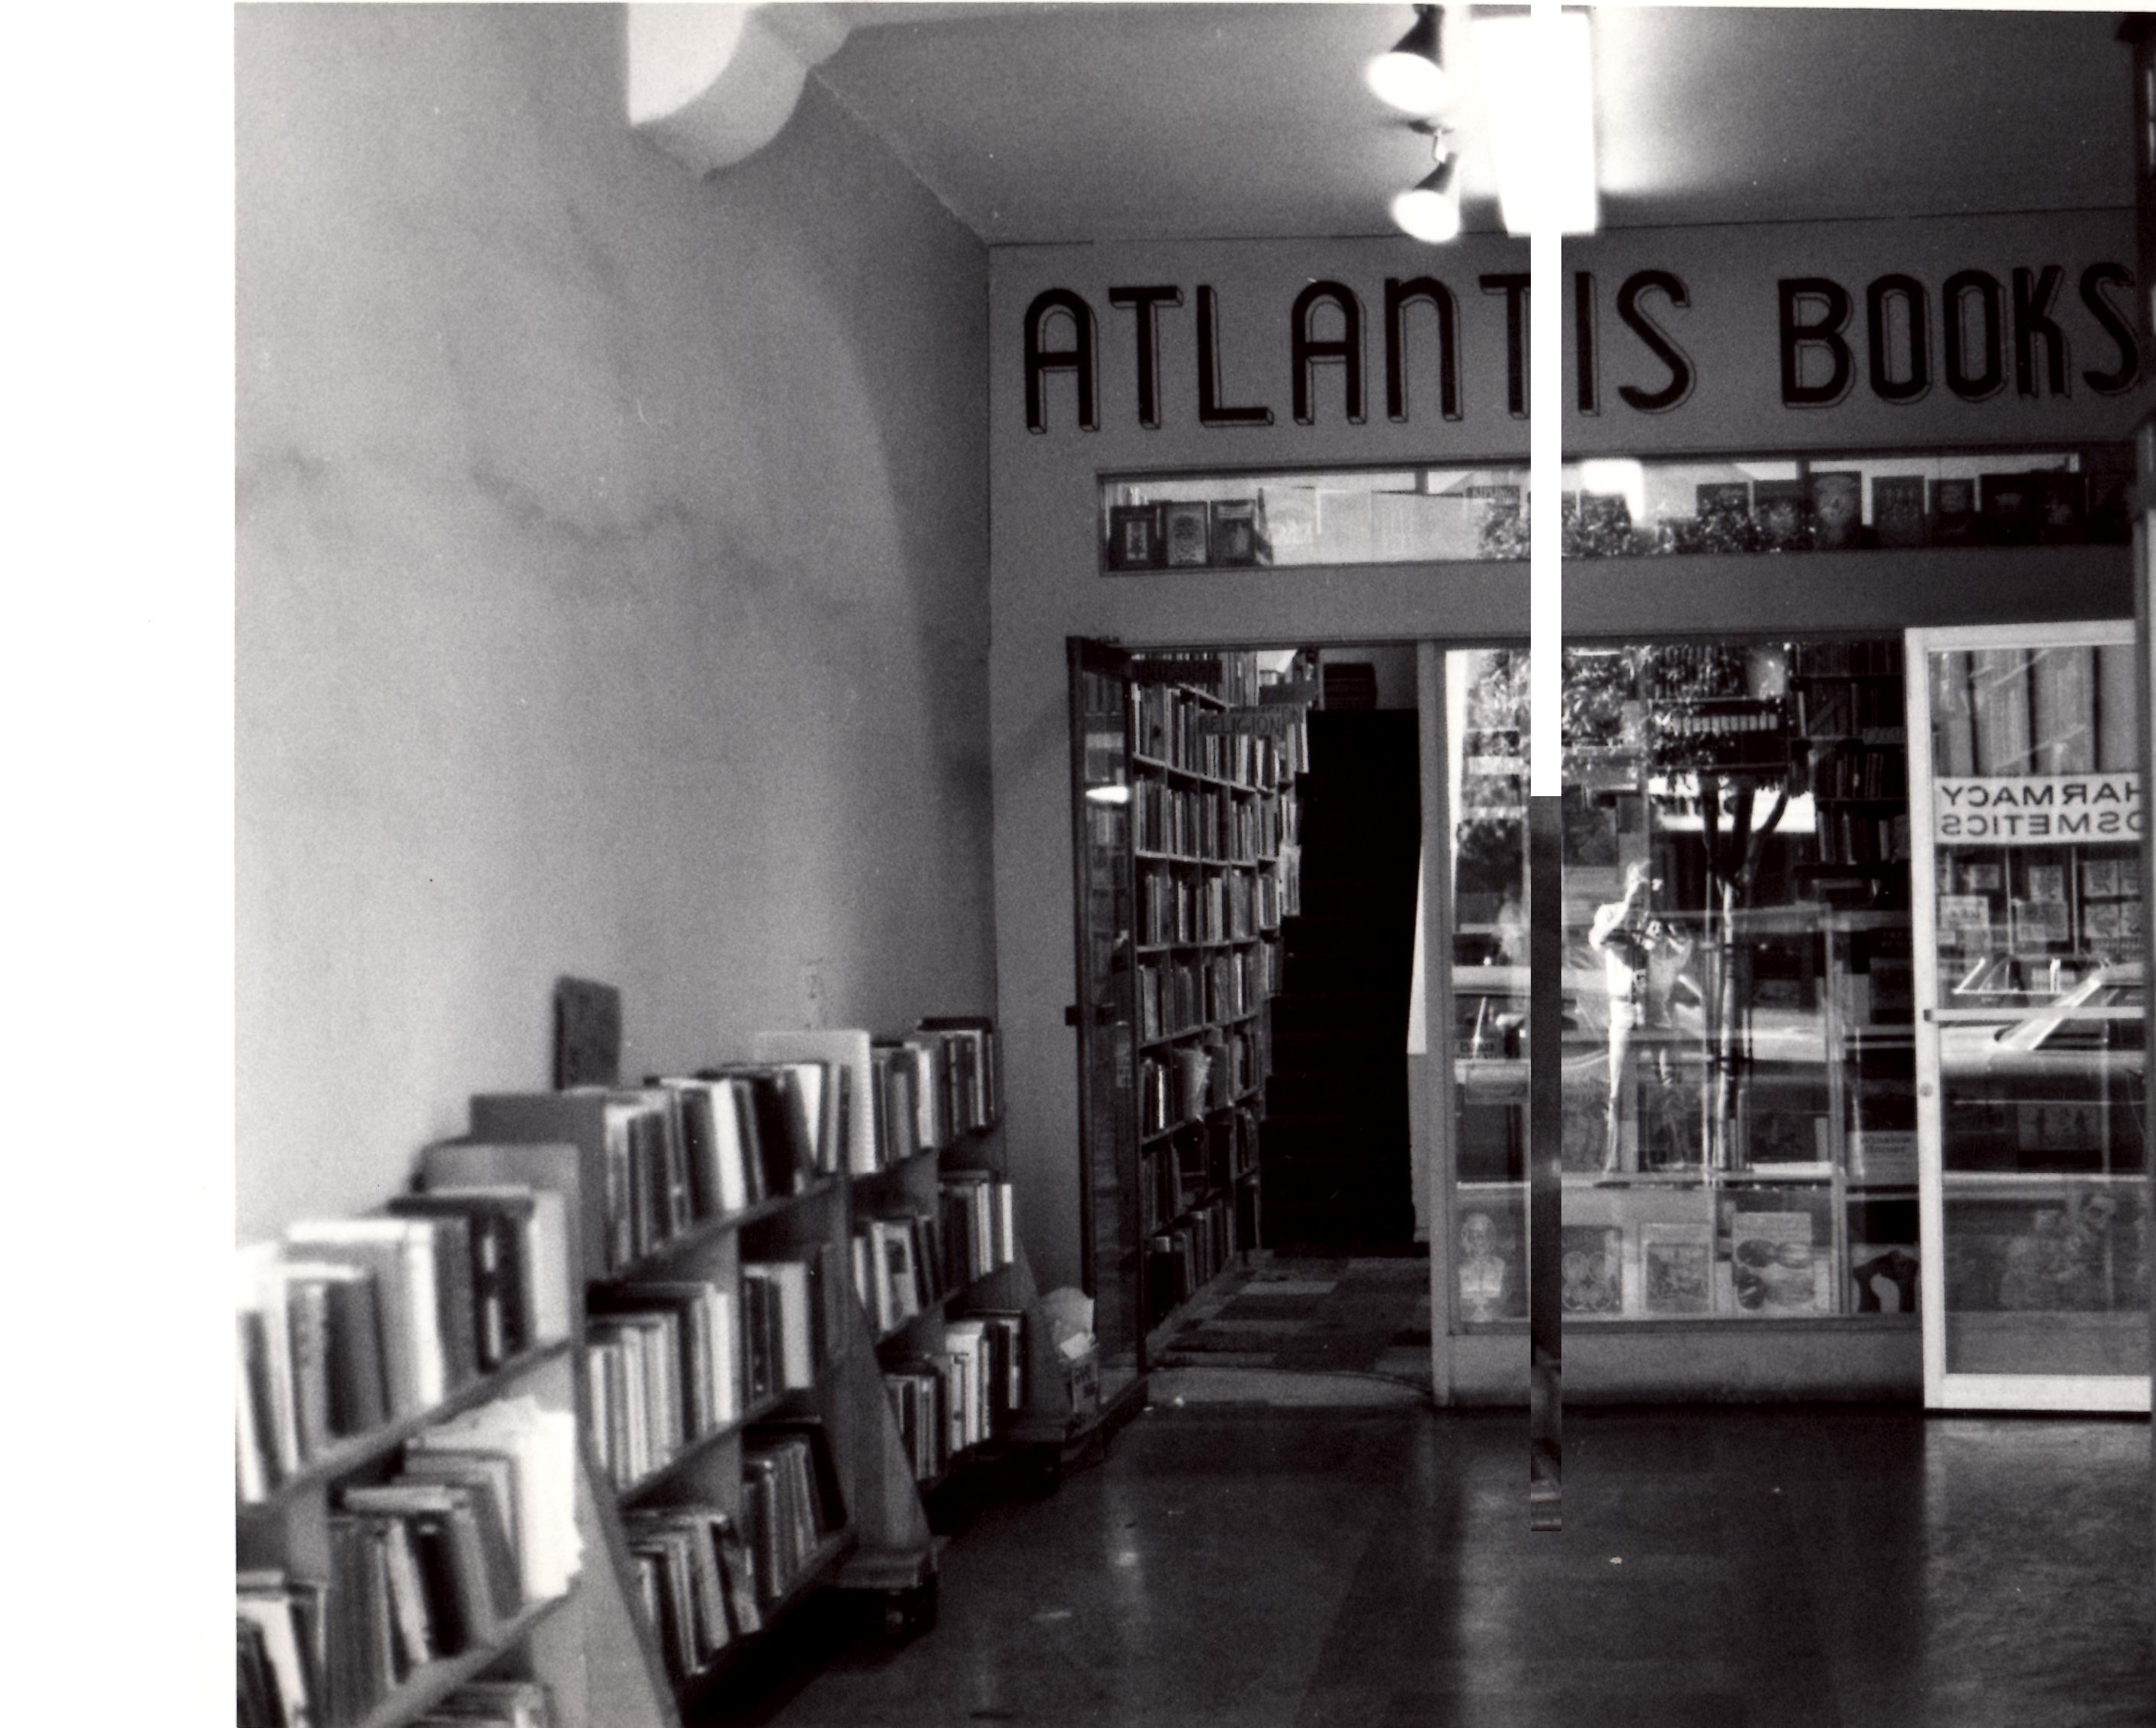 Atlantis Books. Photo by Wayne Braby